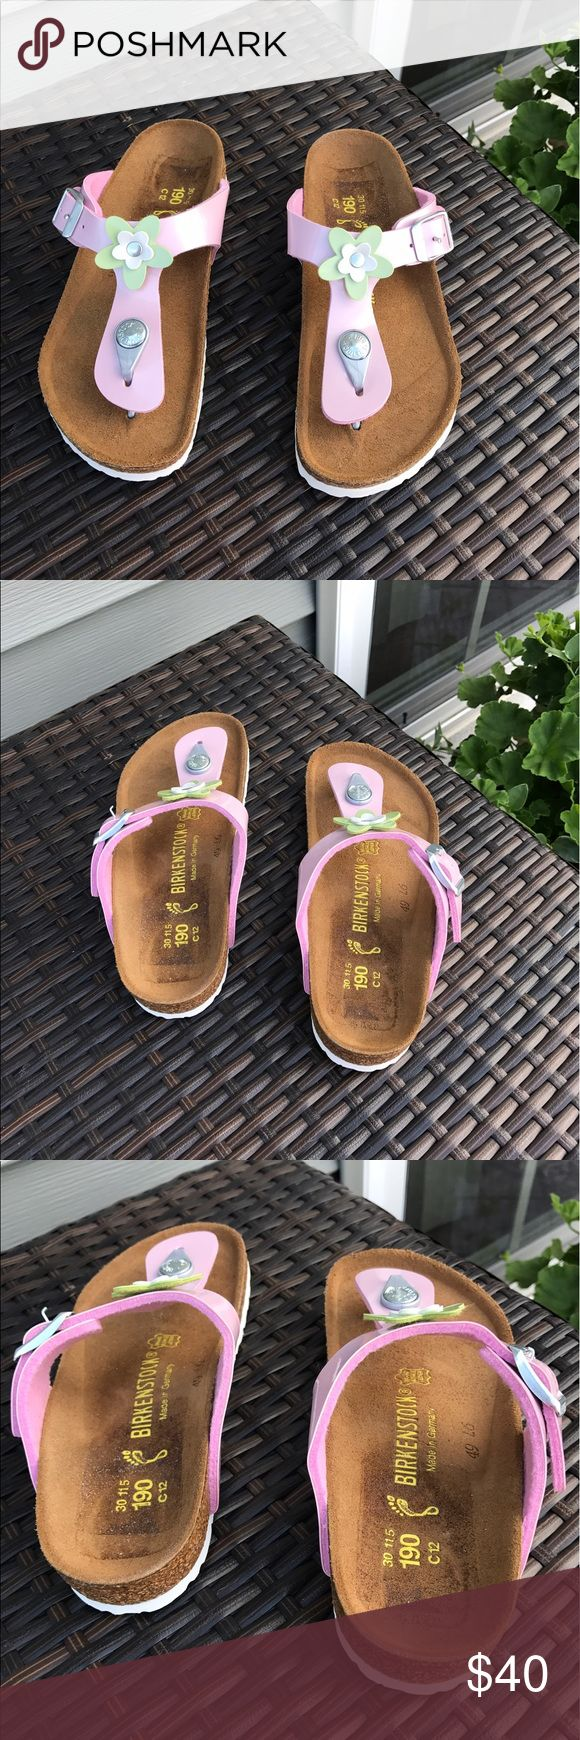 Birkenstock Gizeh Sandal Birkenstock Kids Gizeh Sandal light pink with flower. Size C12 or 30 NARROW. Brand new! Birkenstock Shoes Sandals & Flip Flops